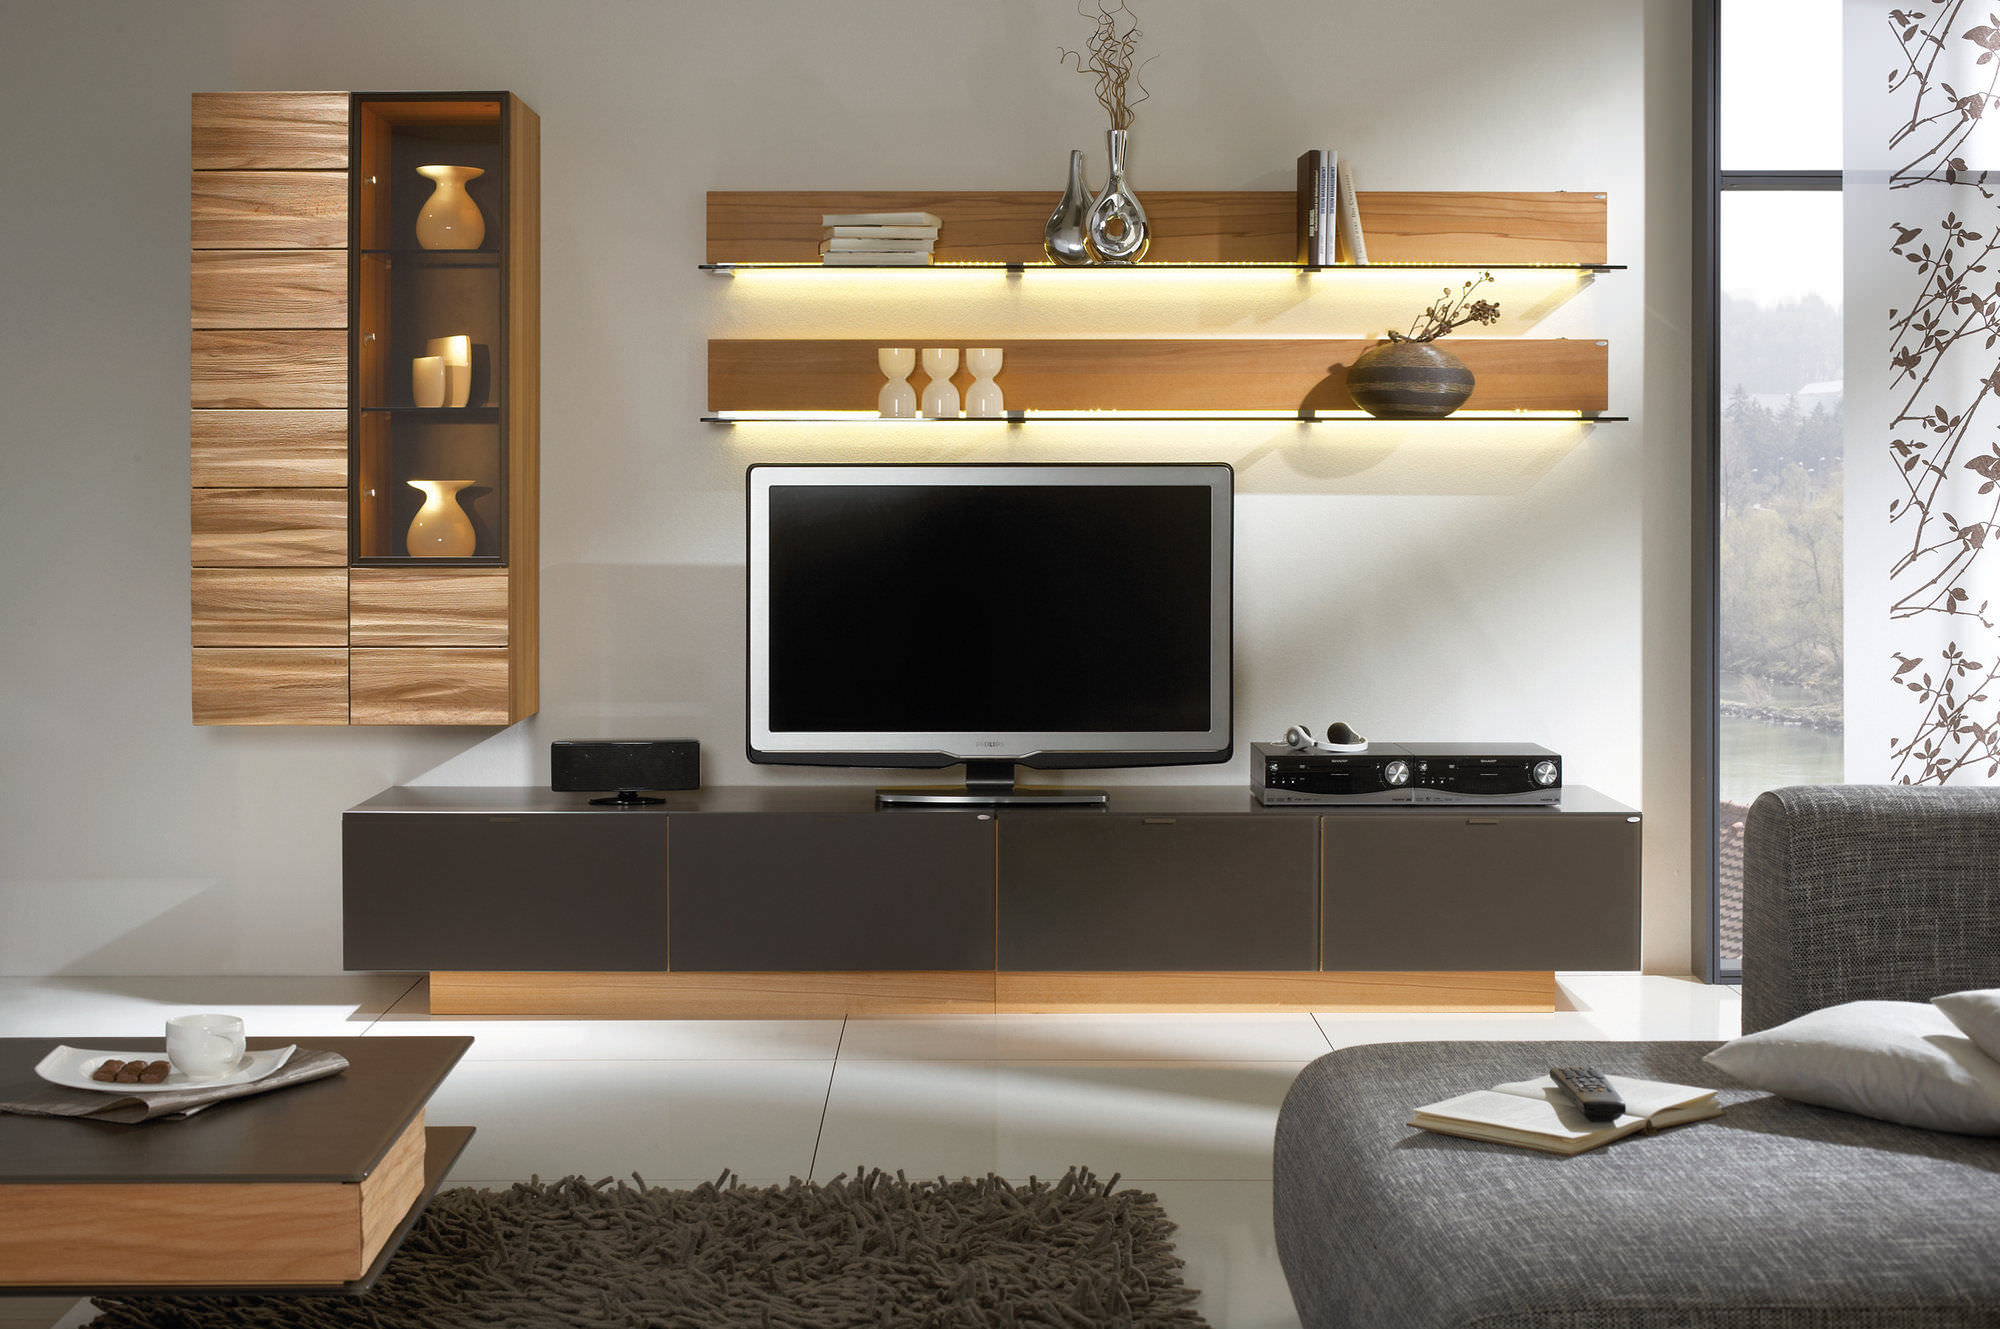 20 modern tv unit design ideas for bedroom living room for Small tv room design ideas